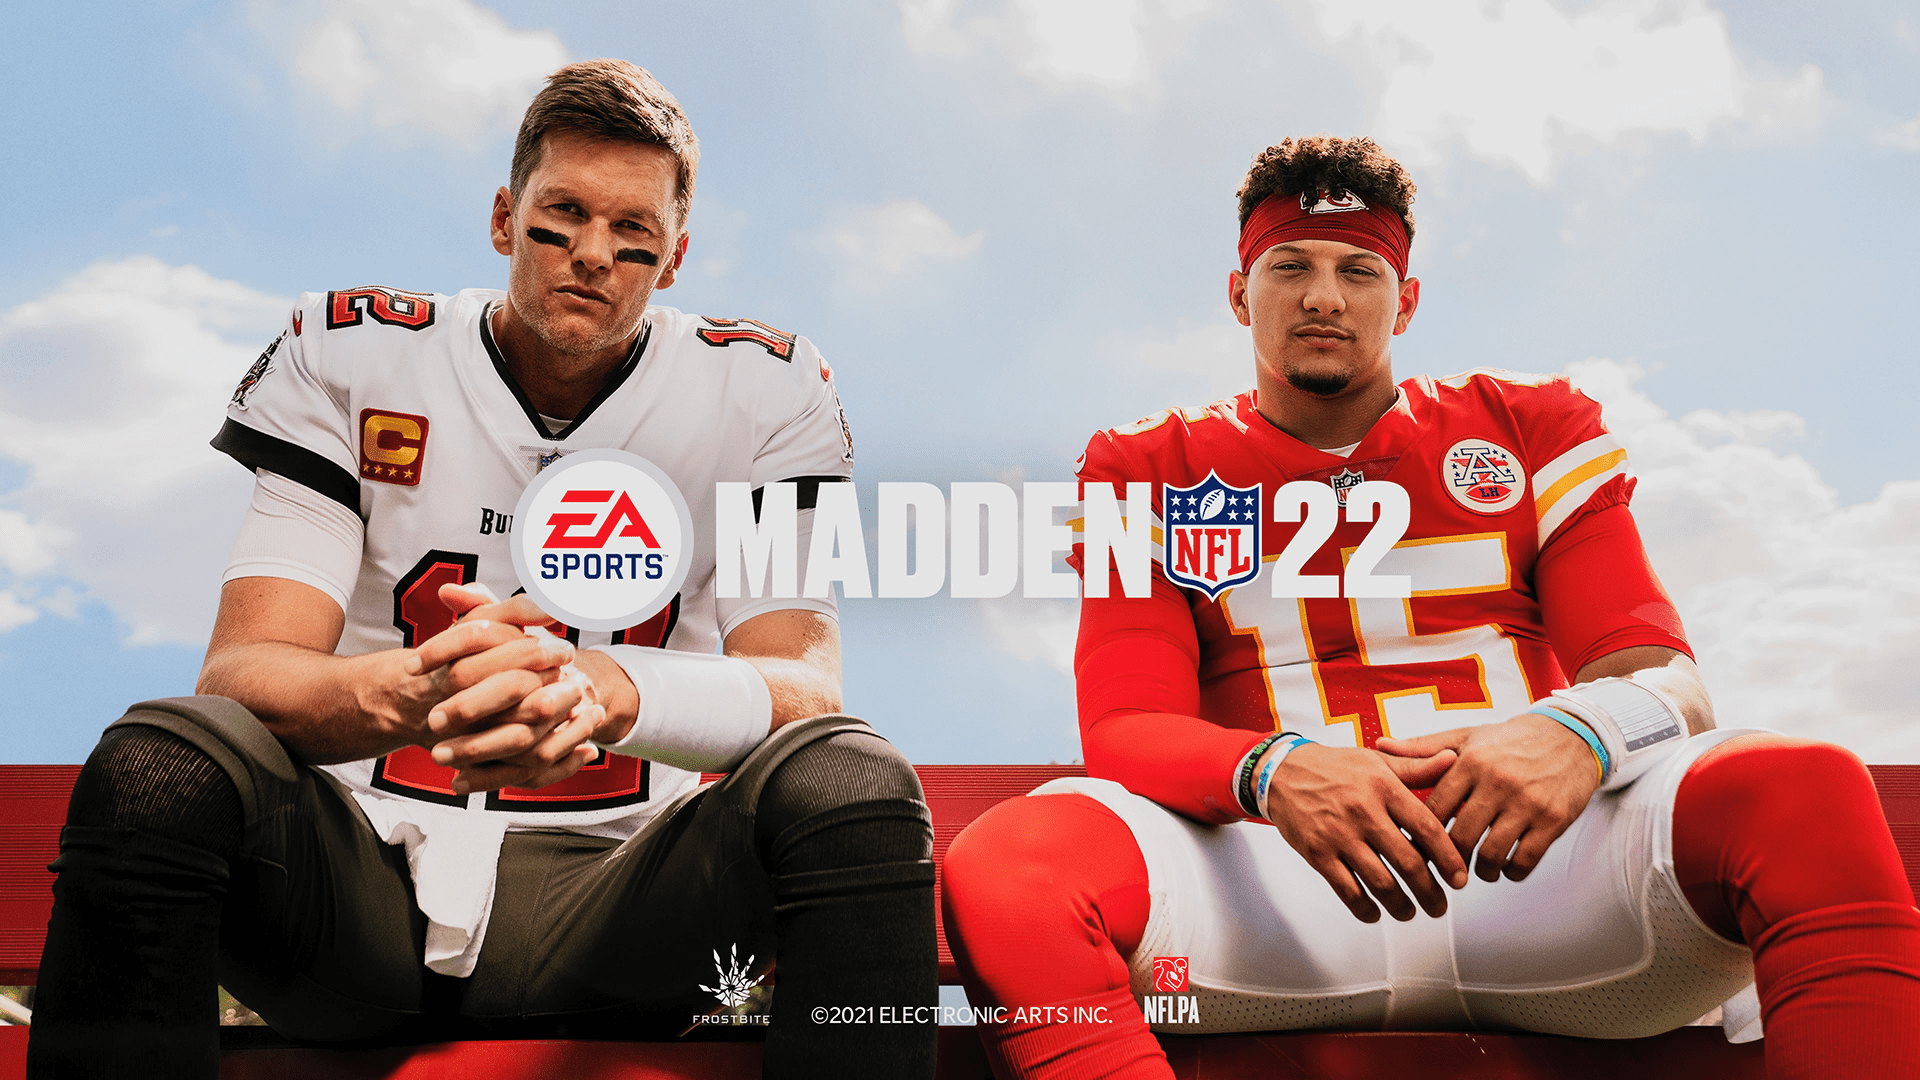 Madden NFL 22 Review (PS4) - The End Of A Generation, Far From GOAT Status